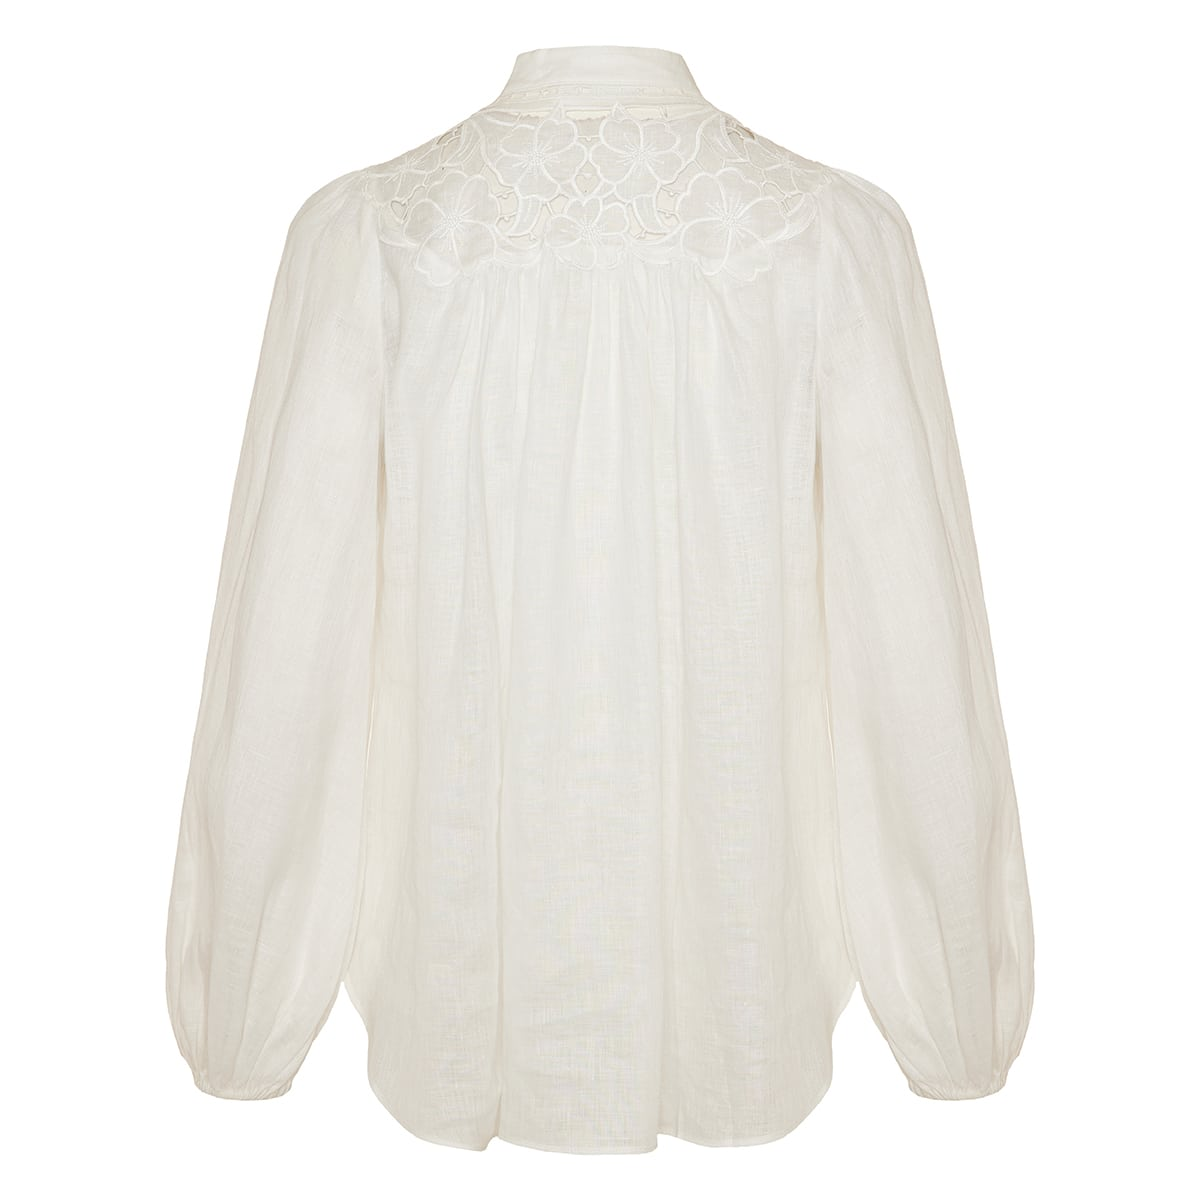 Cassia embroidered linen shirt